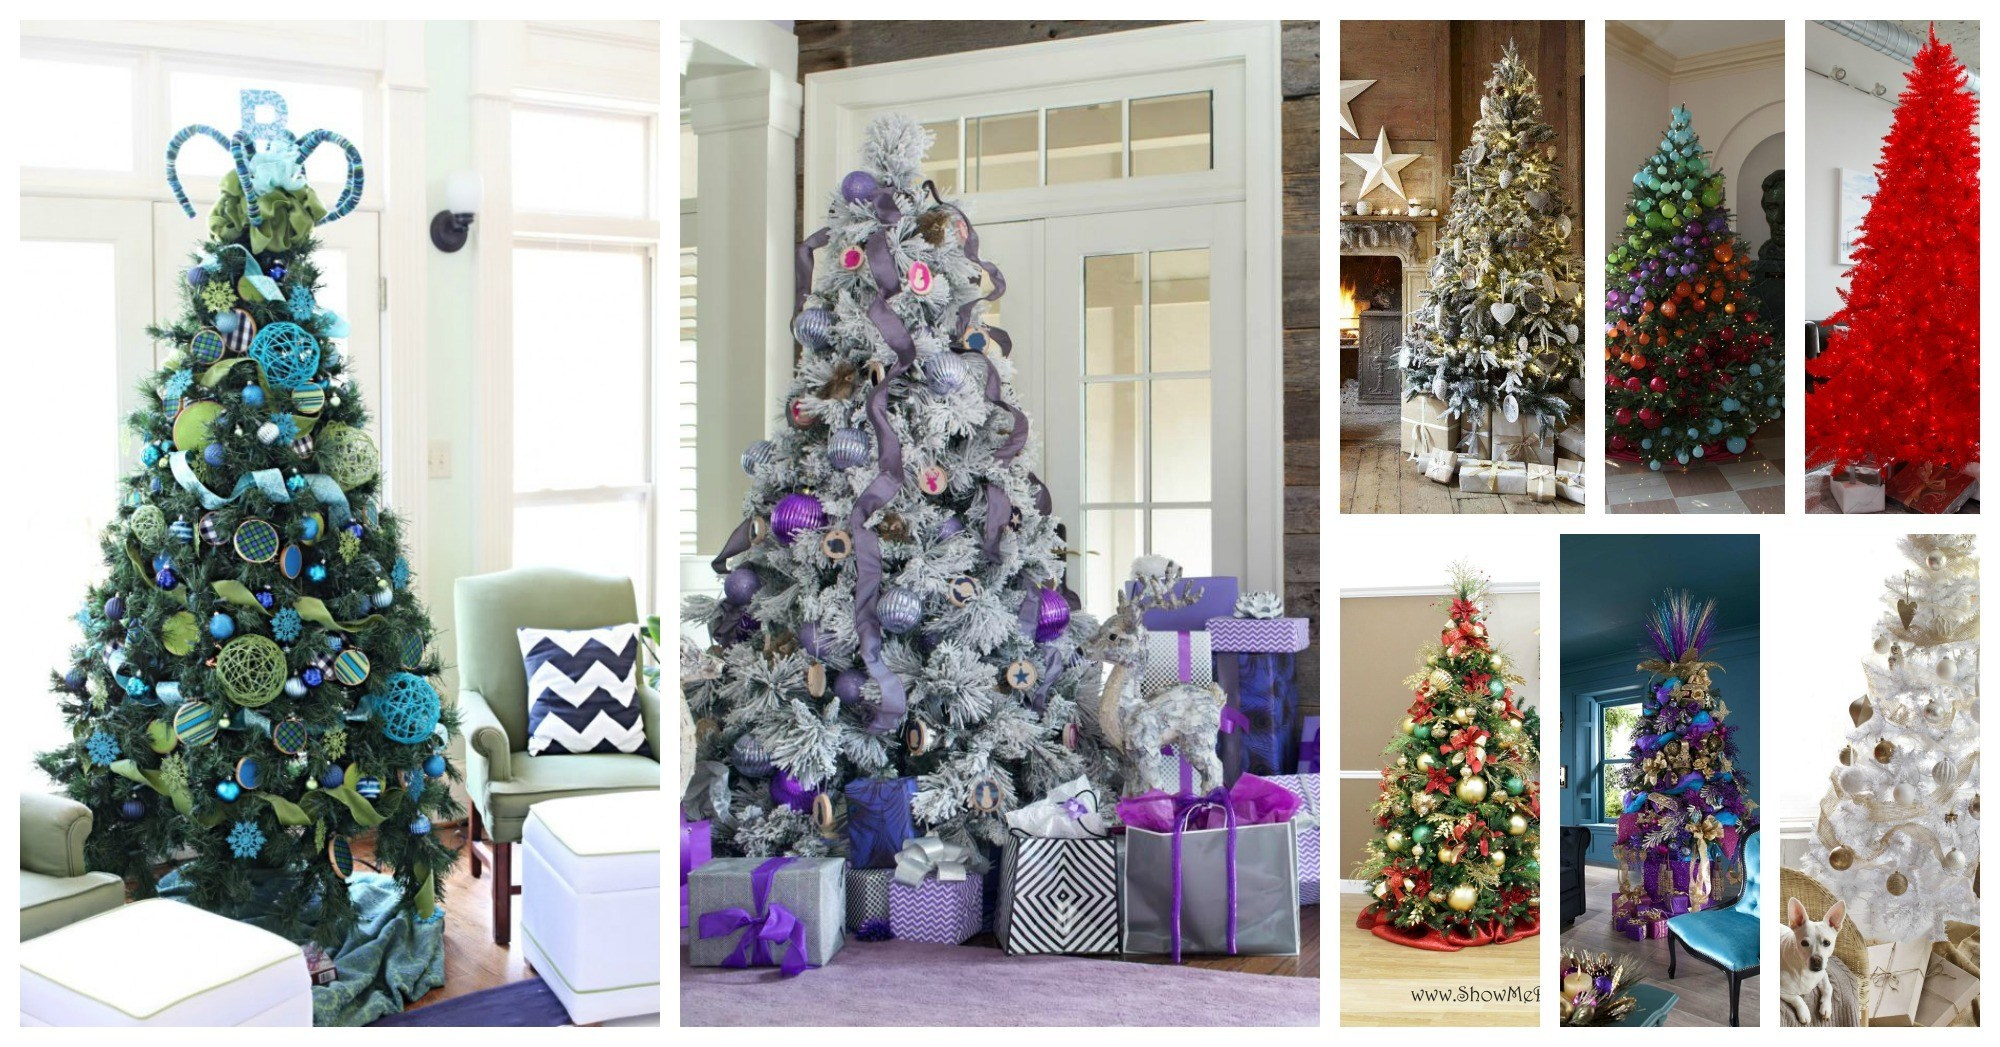 Amazing Christmas Tree Decorations That You Have To See